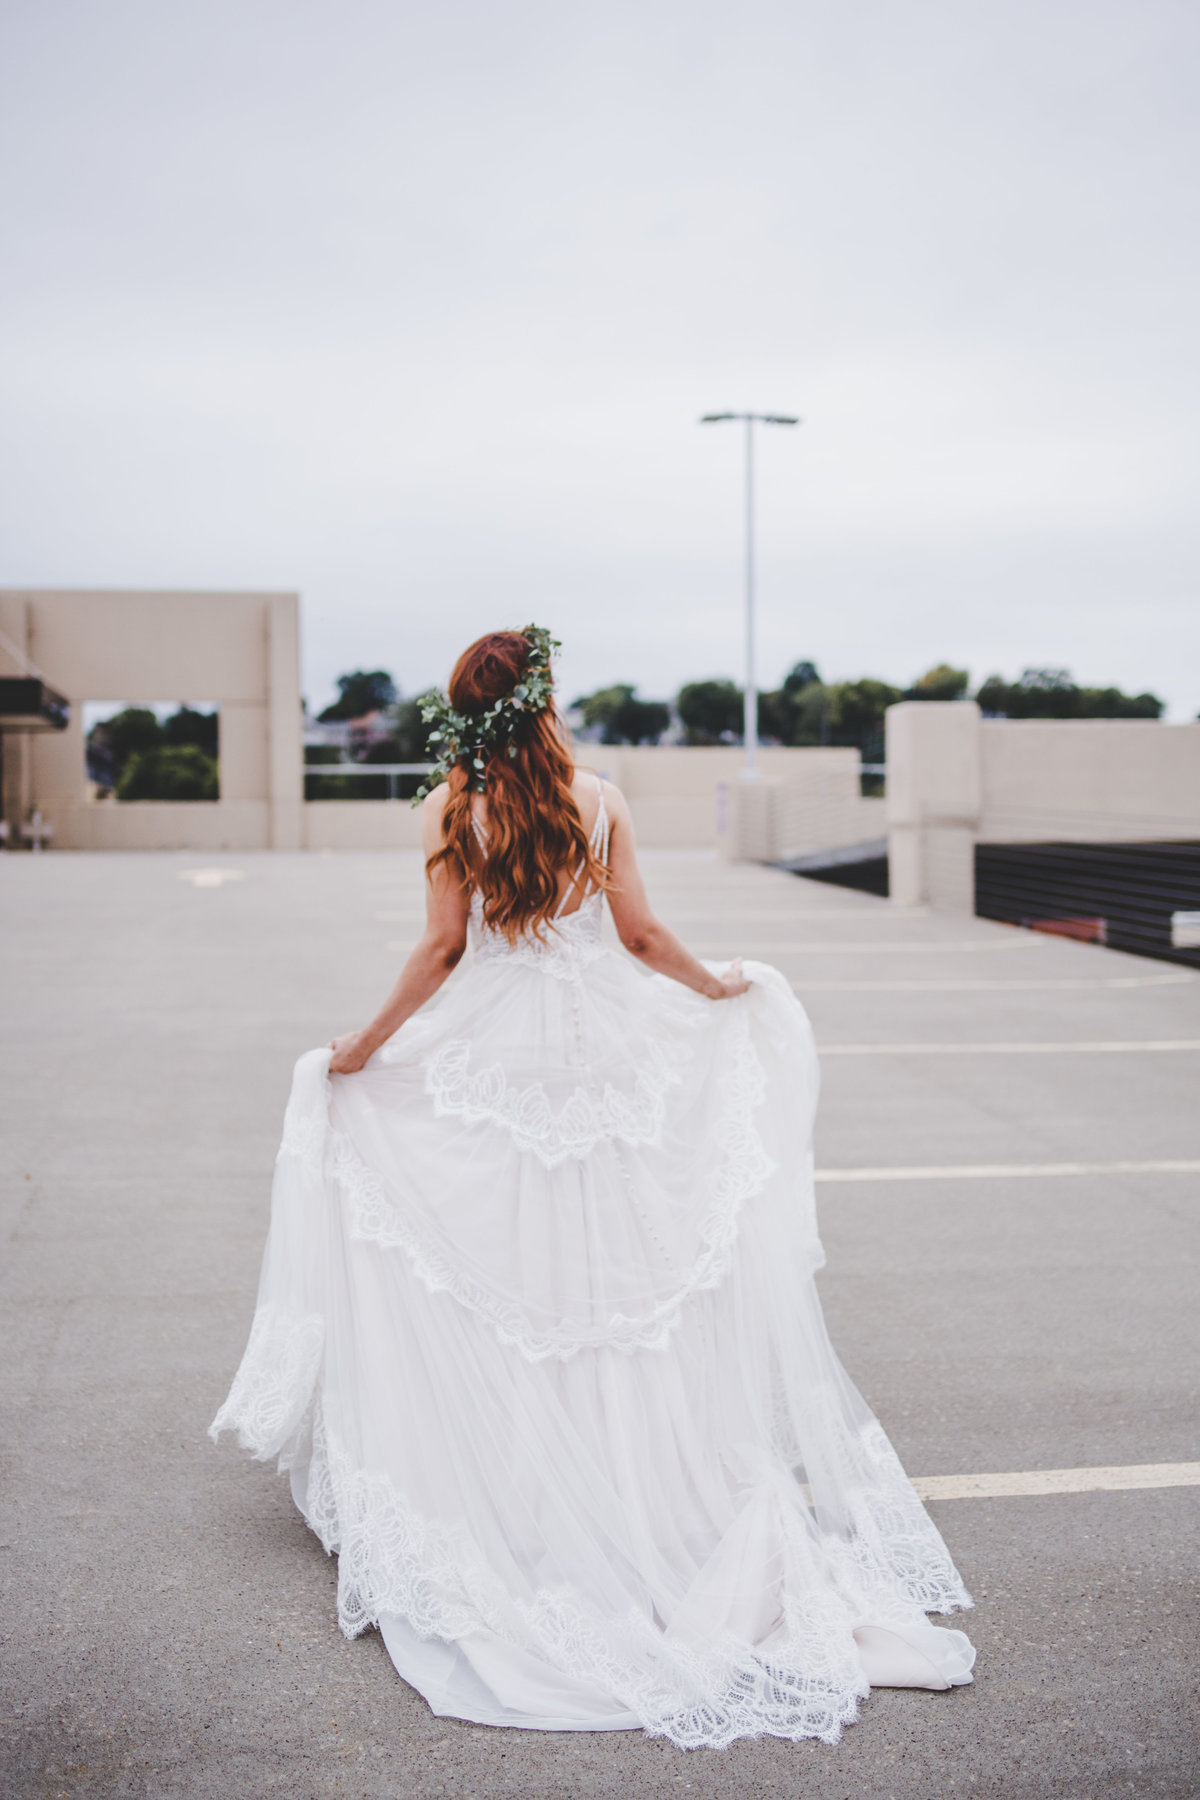 FF6 - White Dress on Parking Ramp (20 of 145)